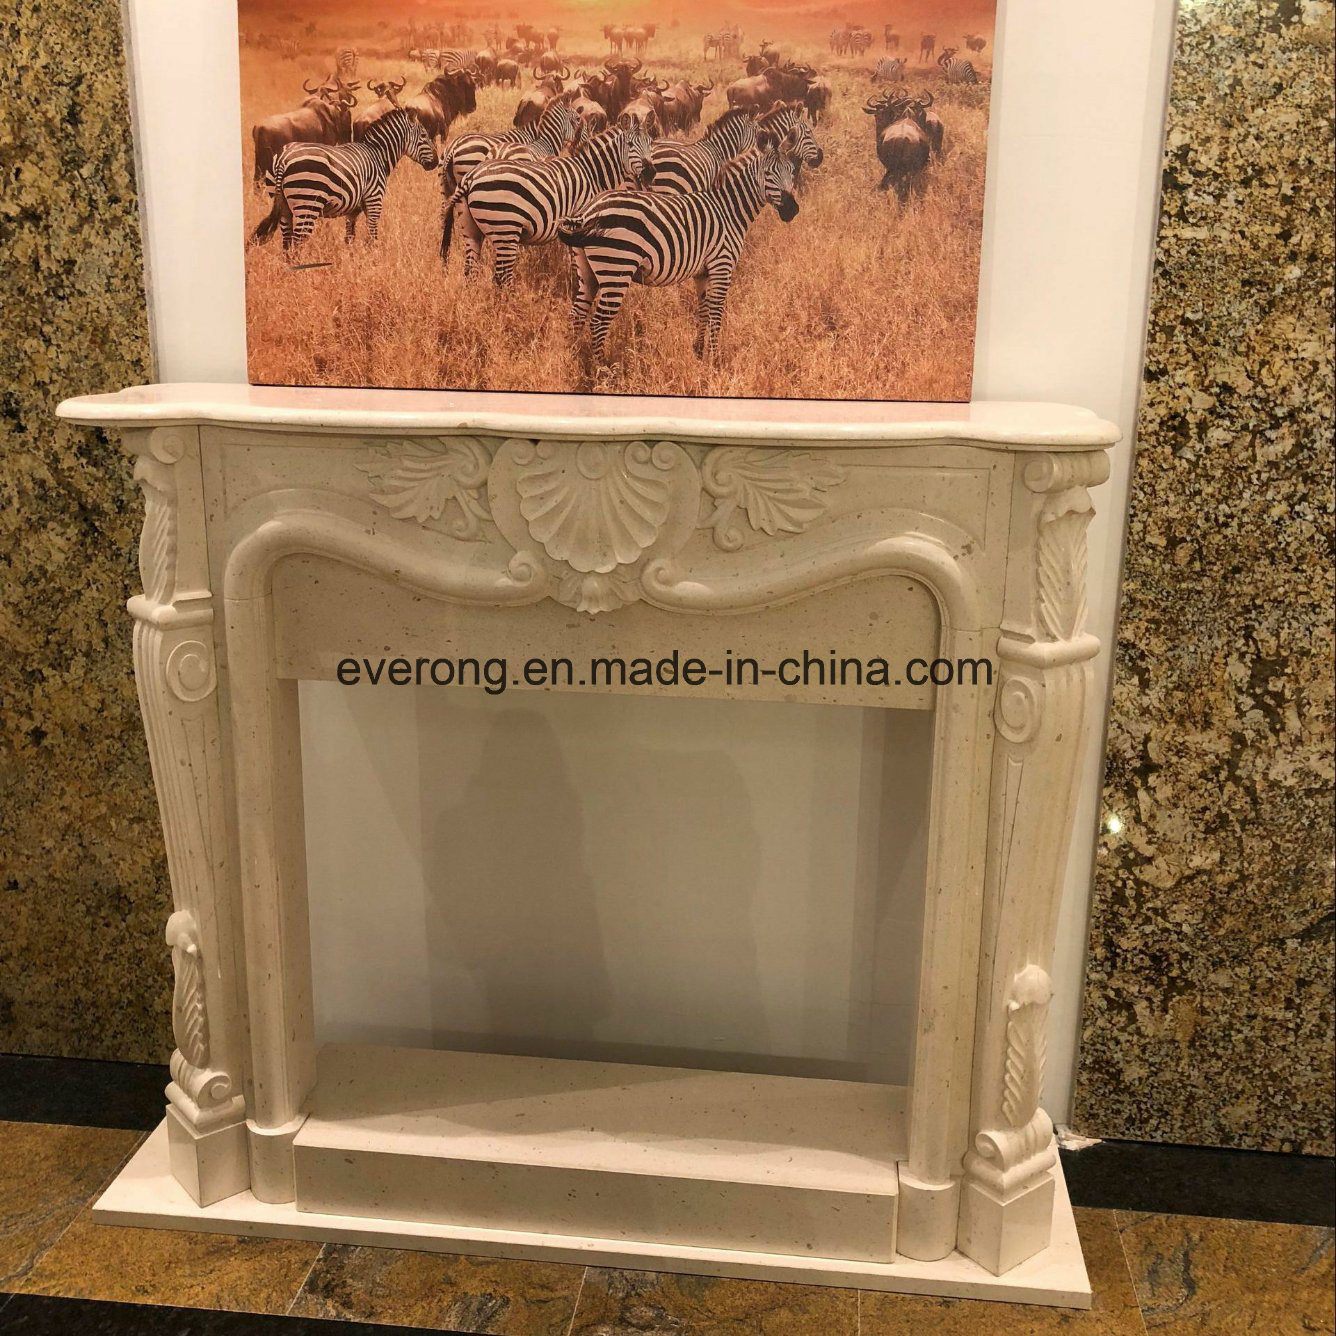 China Cheap Modern Design Stone Marble Fireplace Mantel for Interior Decorative - China Sculpture Marble Fireplace Stone Fireplace Surround & China Cheap Modern Design Stone Marble Fireplace Mantel for Interior ...